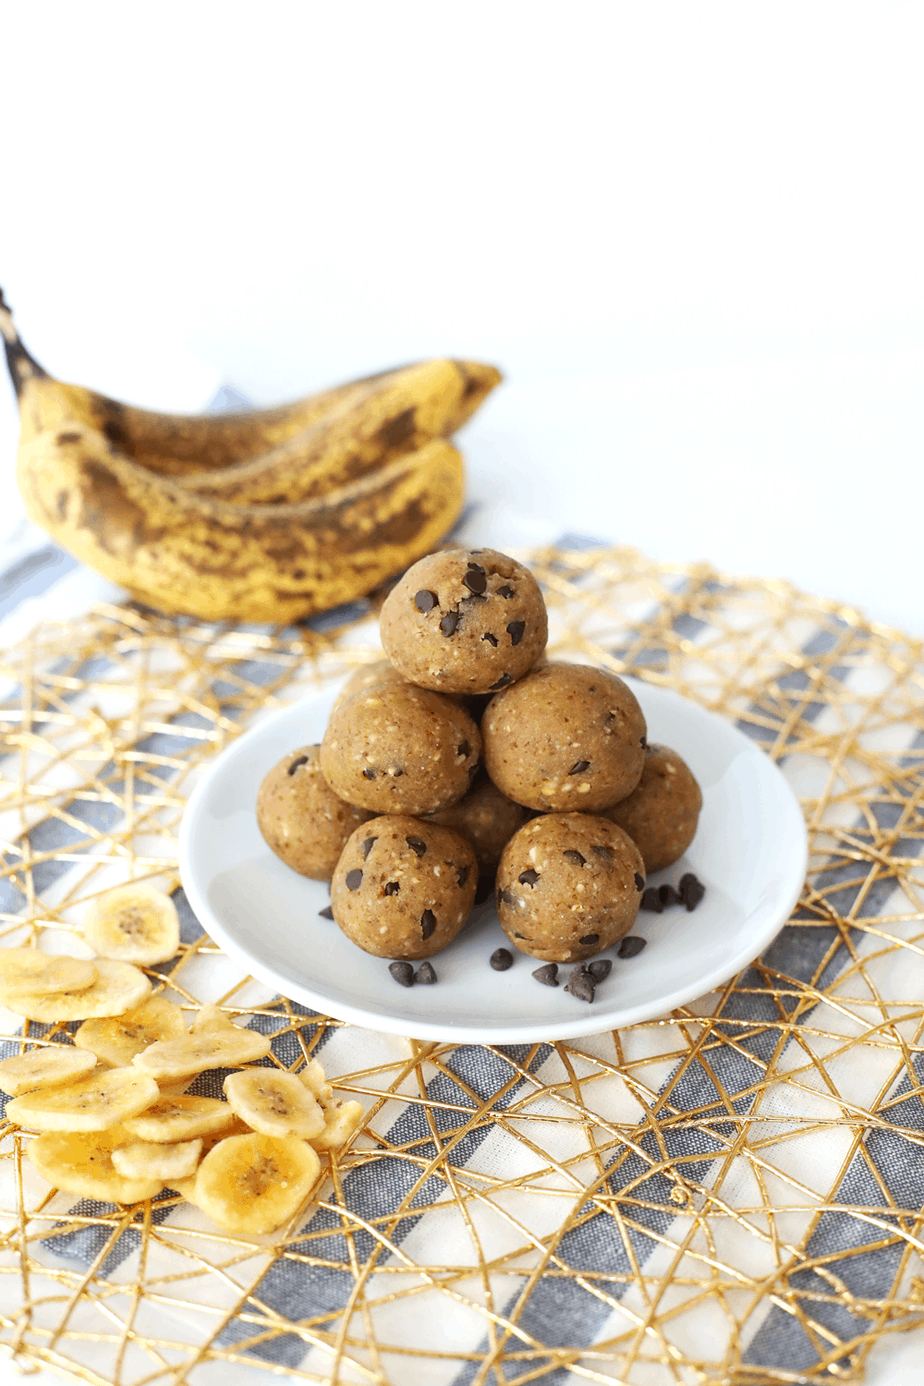 Delicious Banana Chocolate Chip Energy Balls served in a stack on a plate with banana chips on the side.